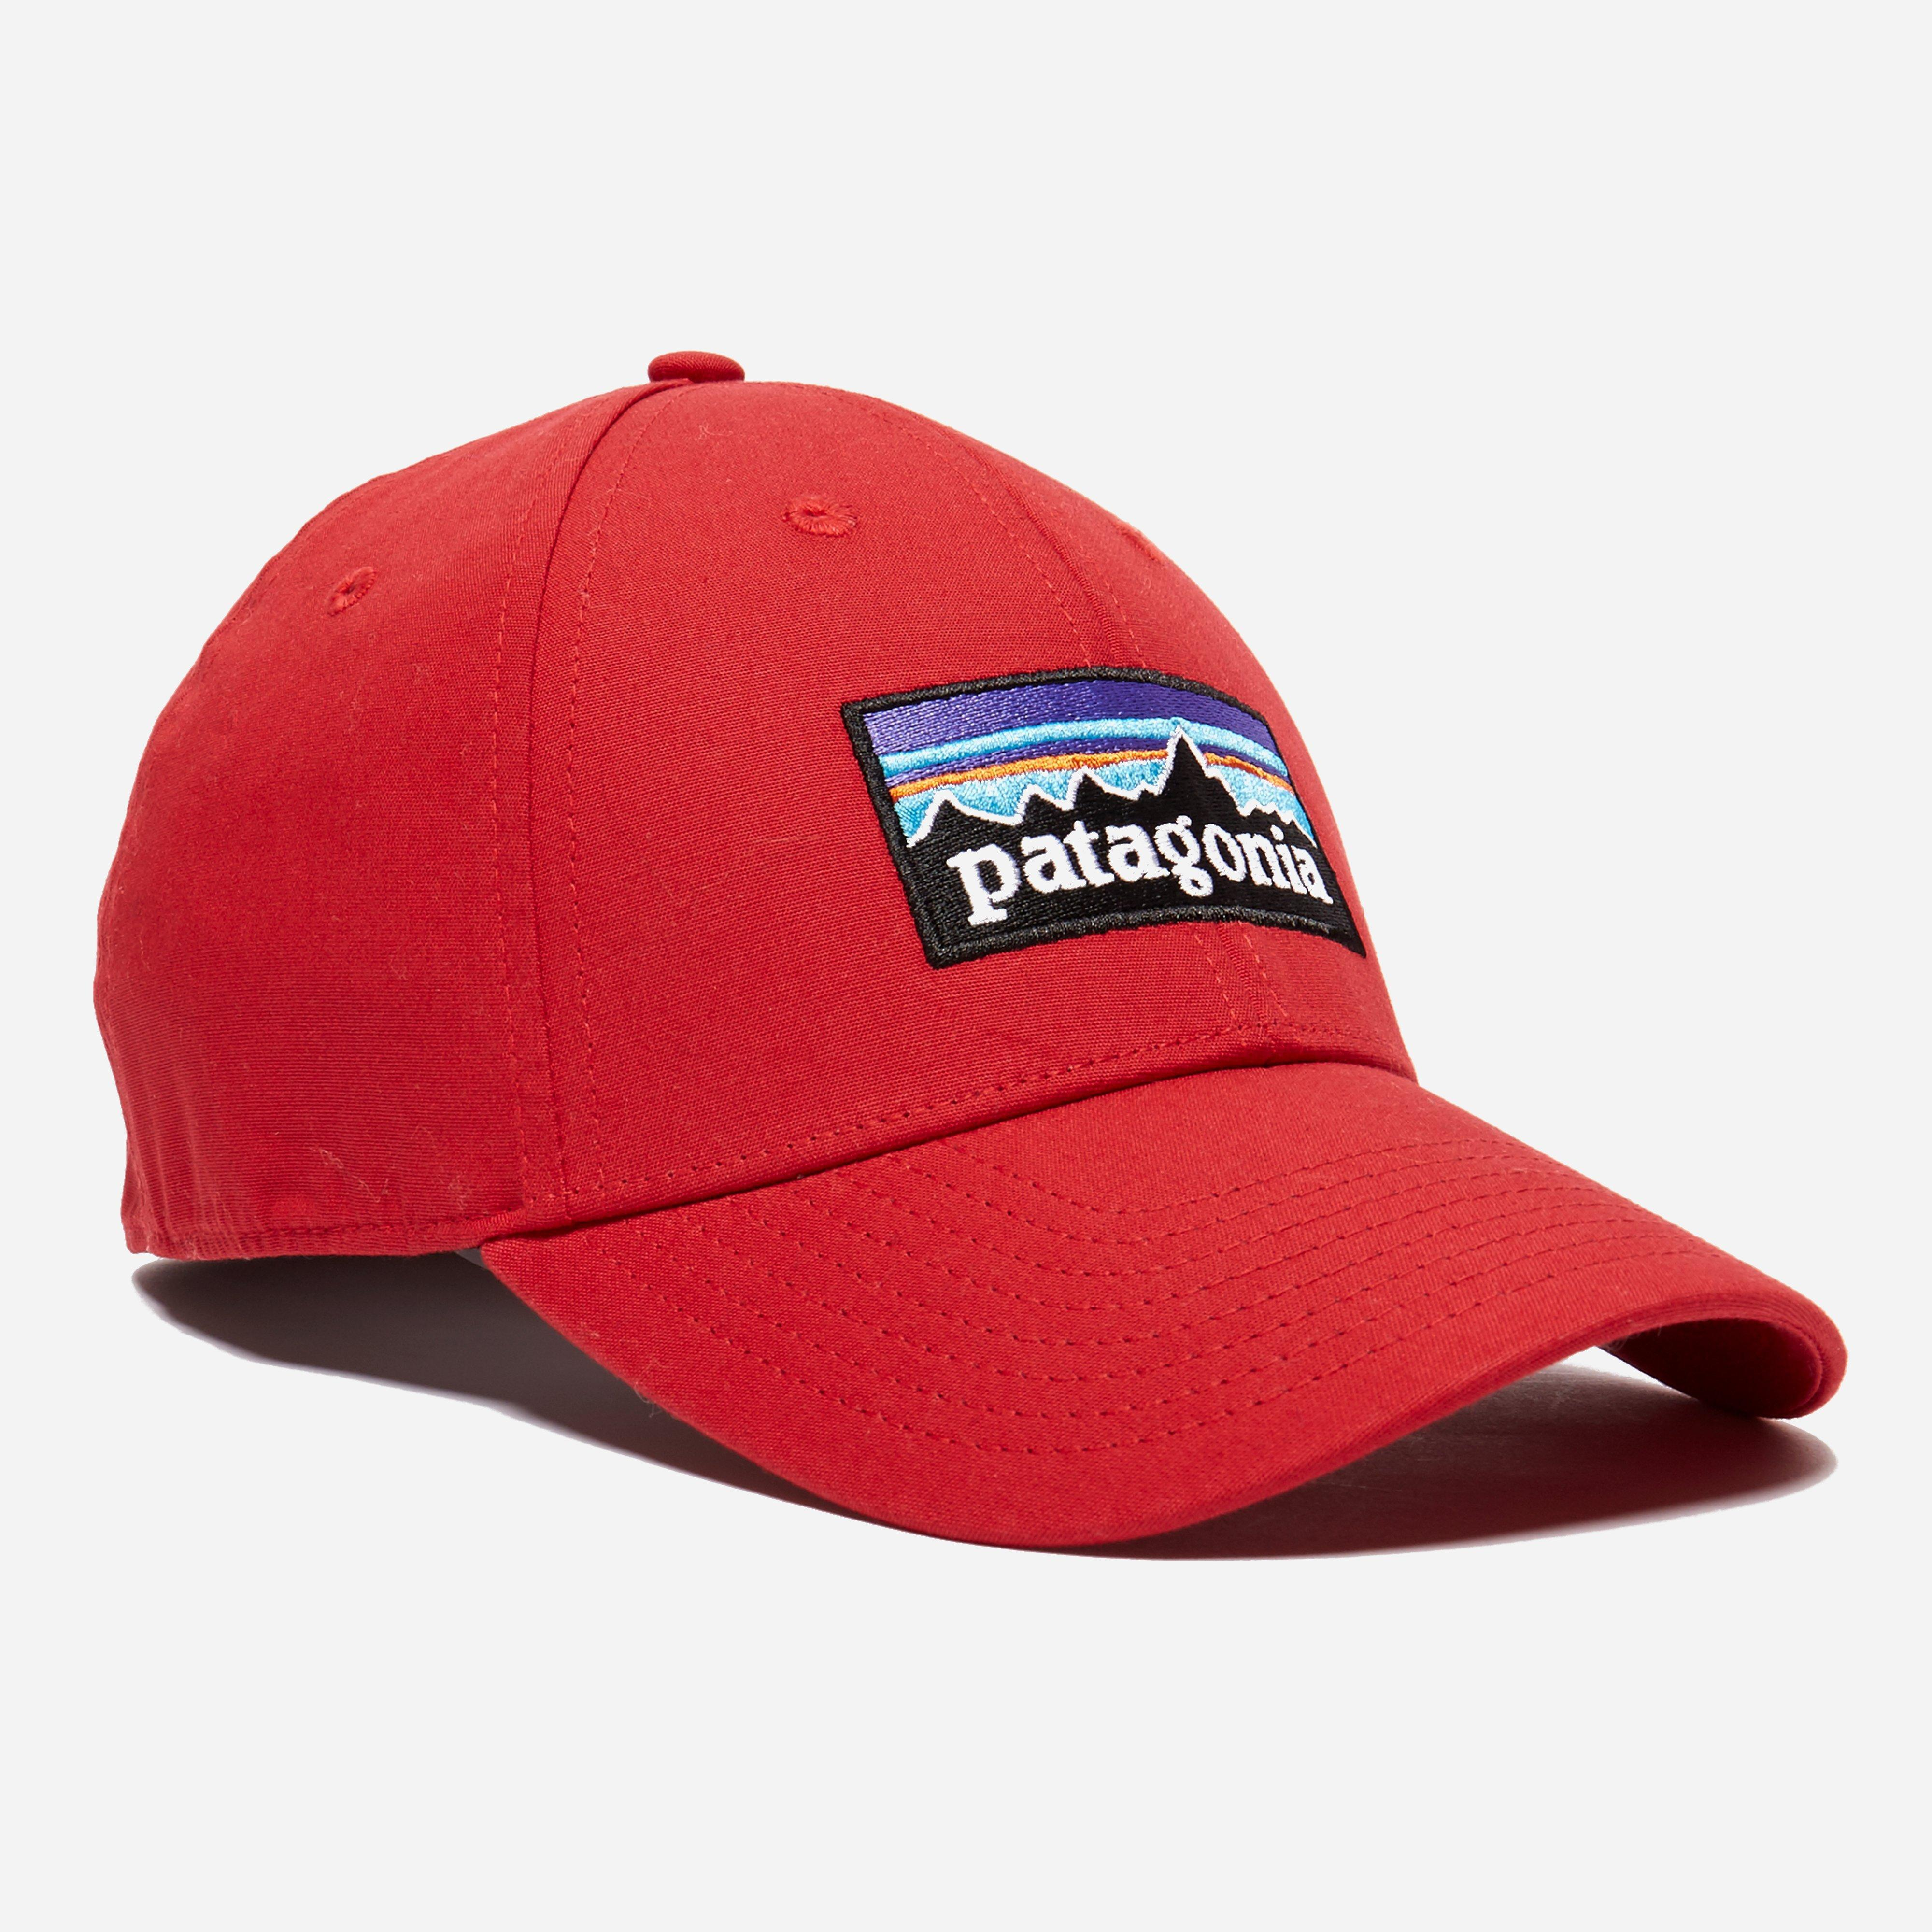 Lyst - Patagonia P-6 Logo Stretch Fit Hat in Red for Men f61658be252